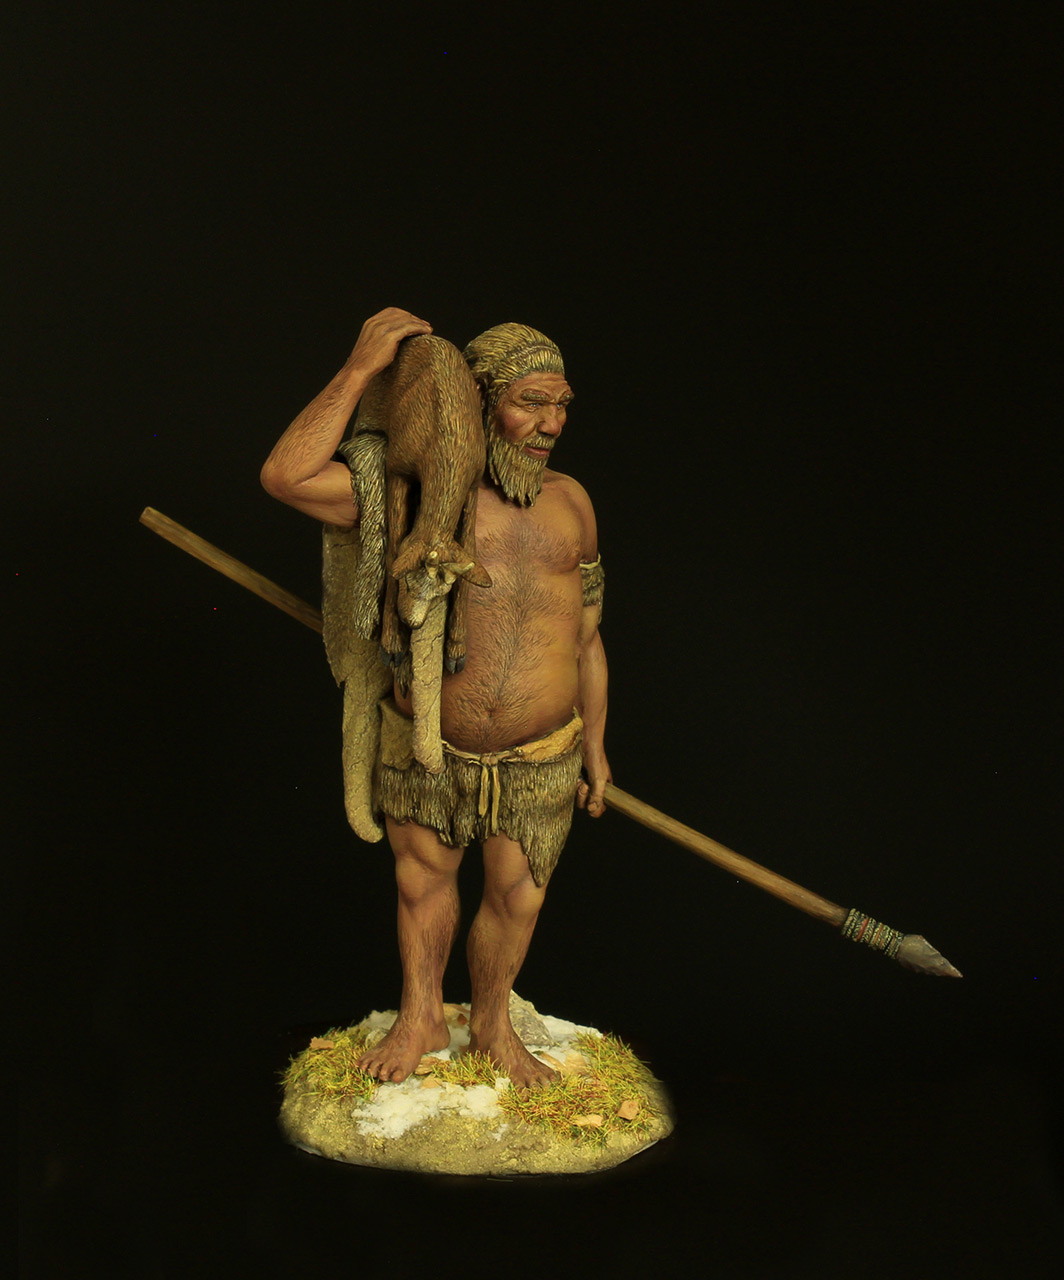 Figures: The Neanderthal, photo #2